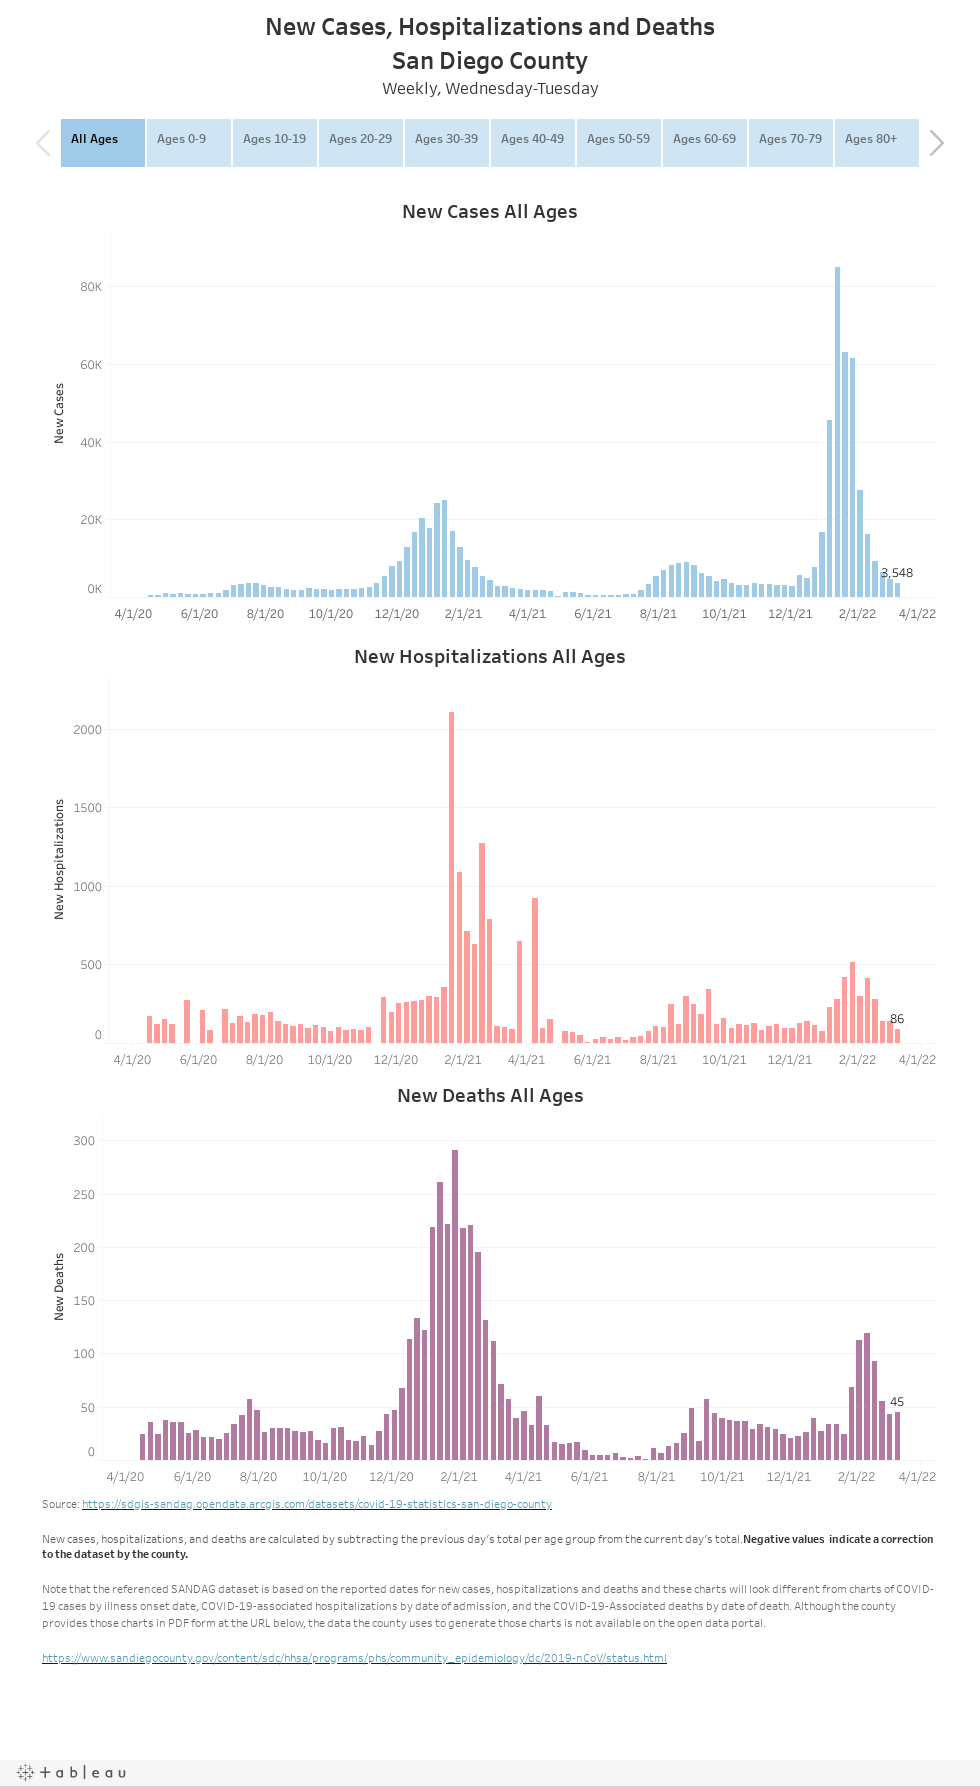 New Cases, Hospitalizations and Deaths